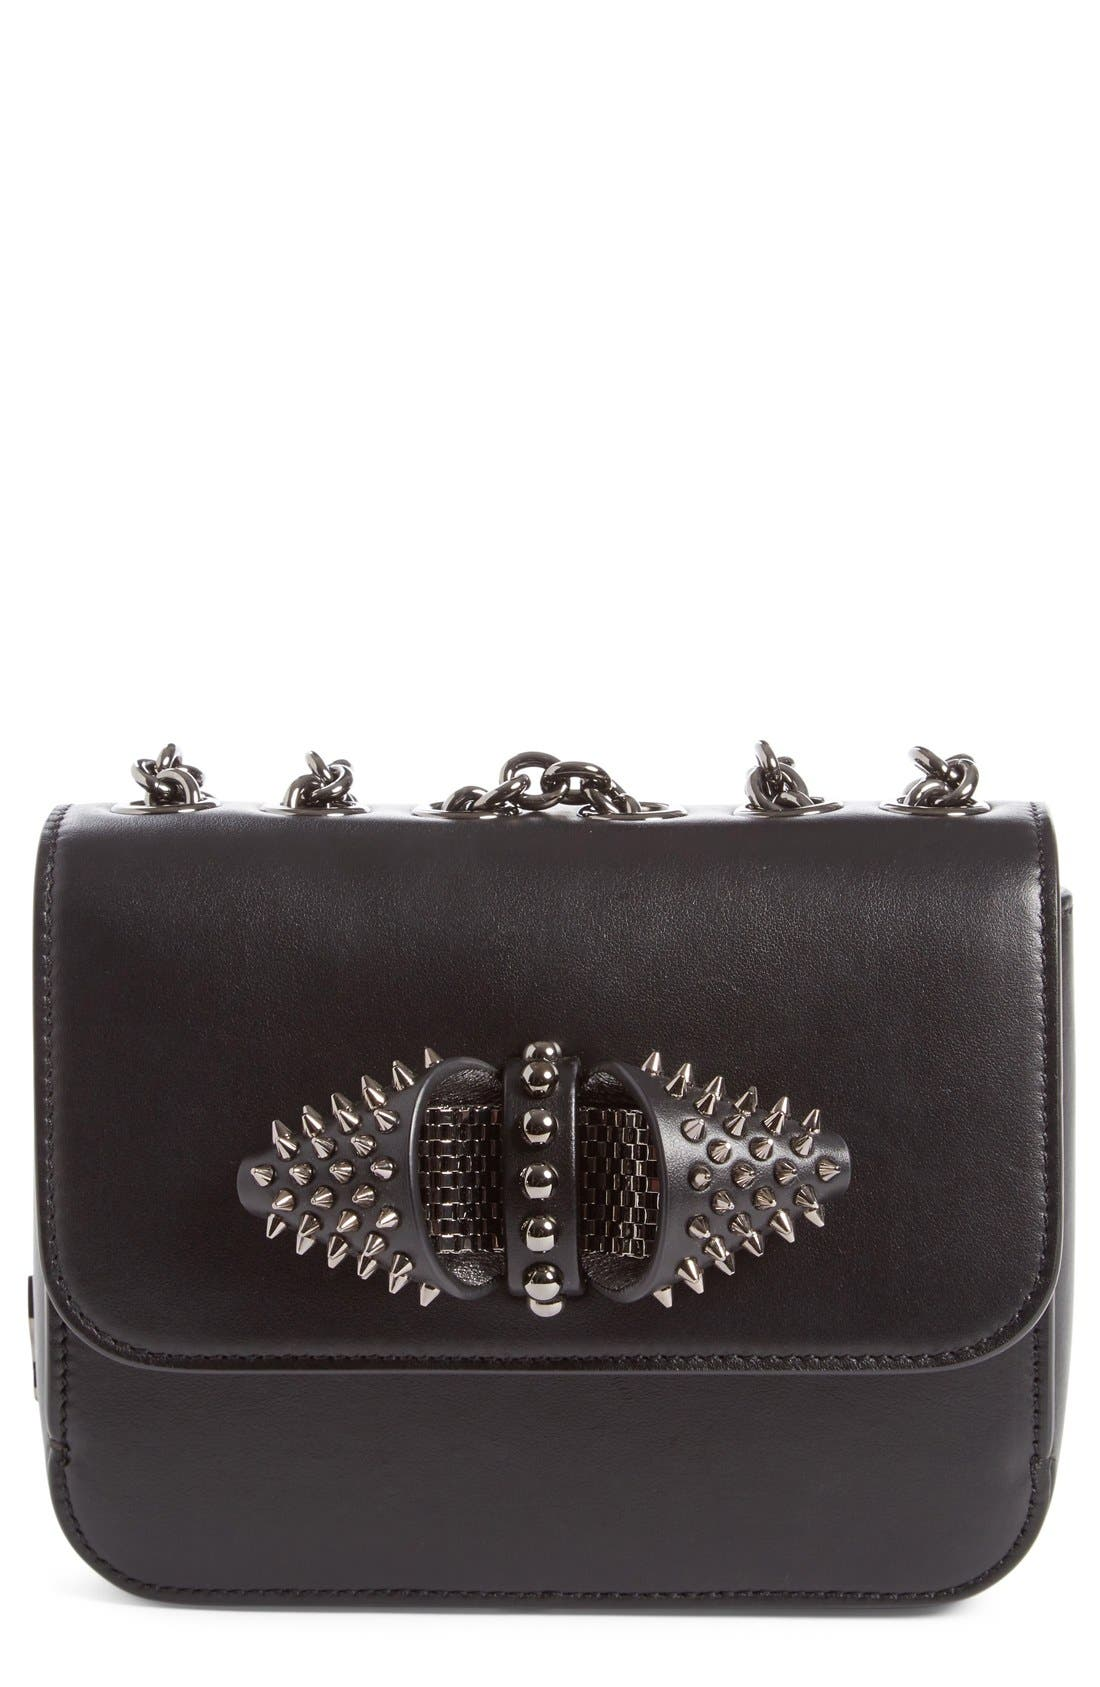 Christian Louboutin 'Mini Sweet Charity' Spiked Calfskin Shoulder/Crossbody Bag